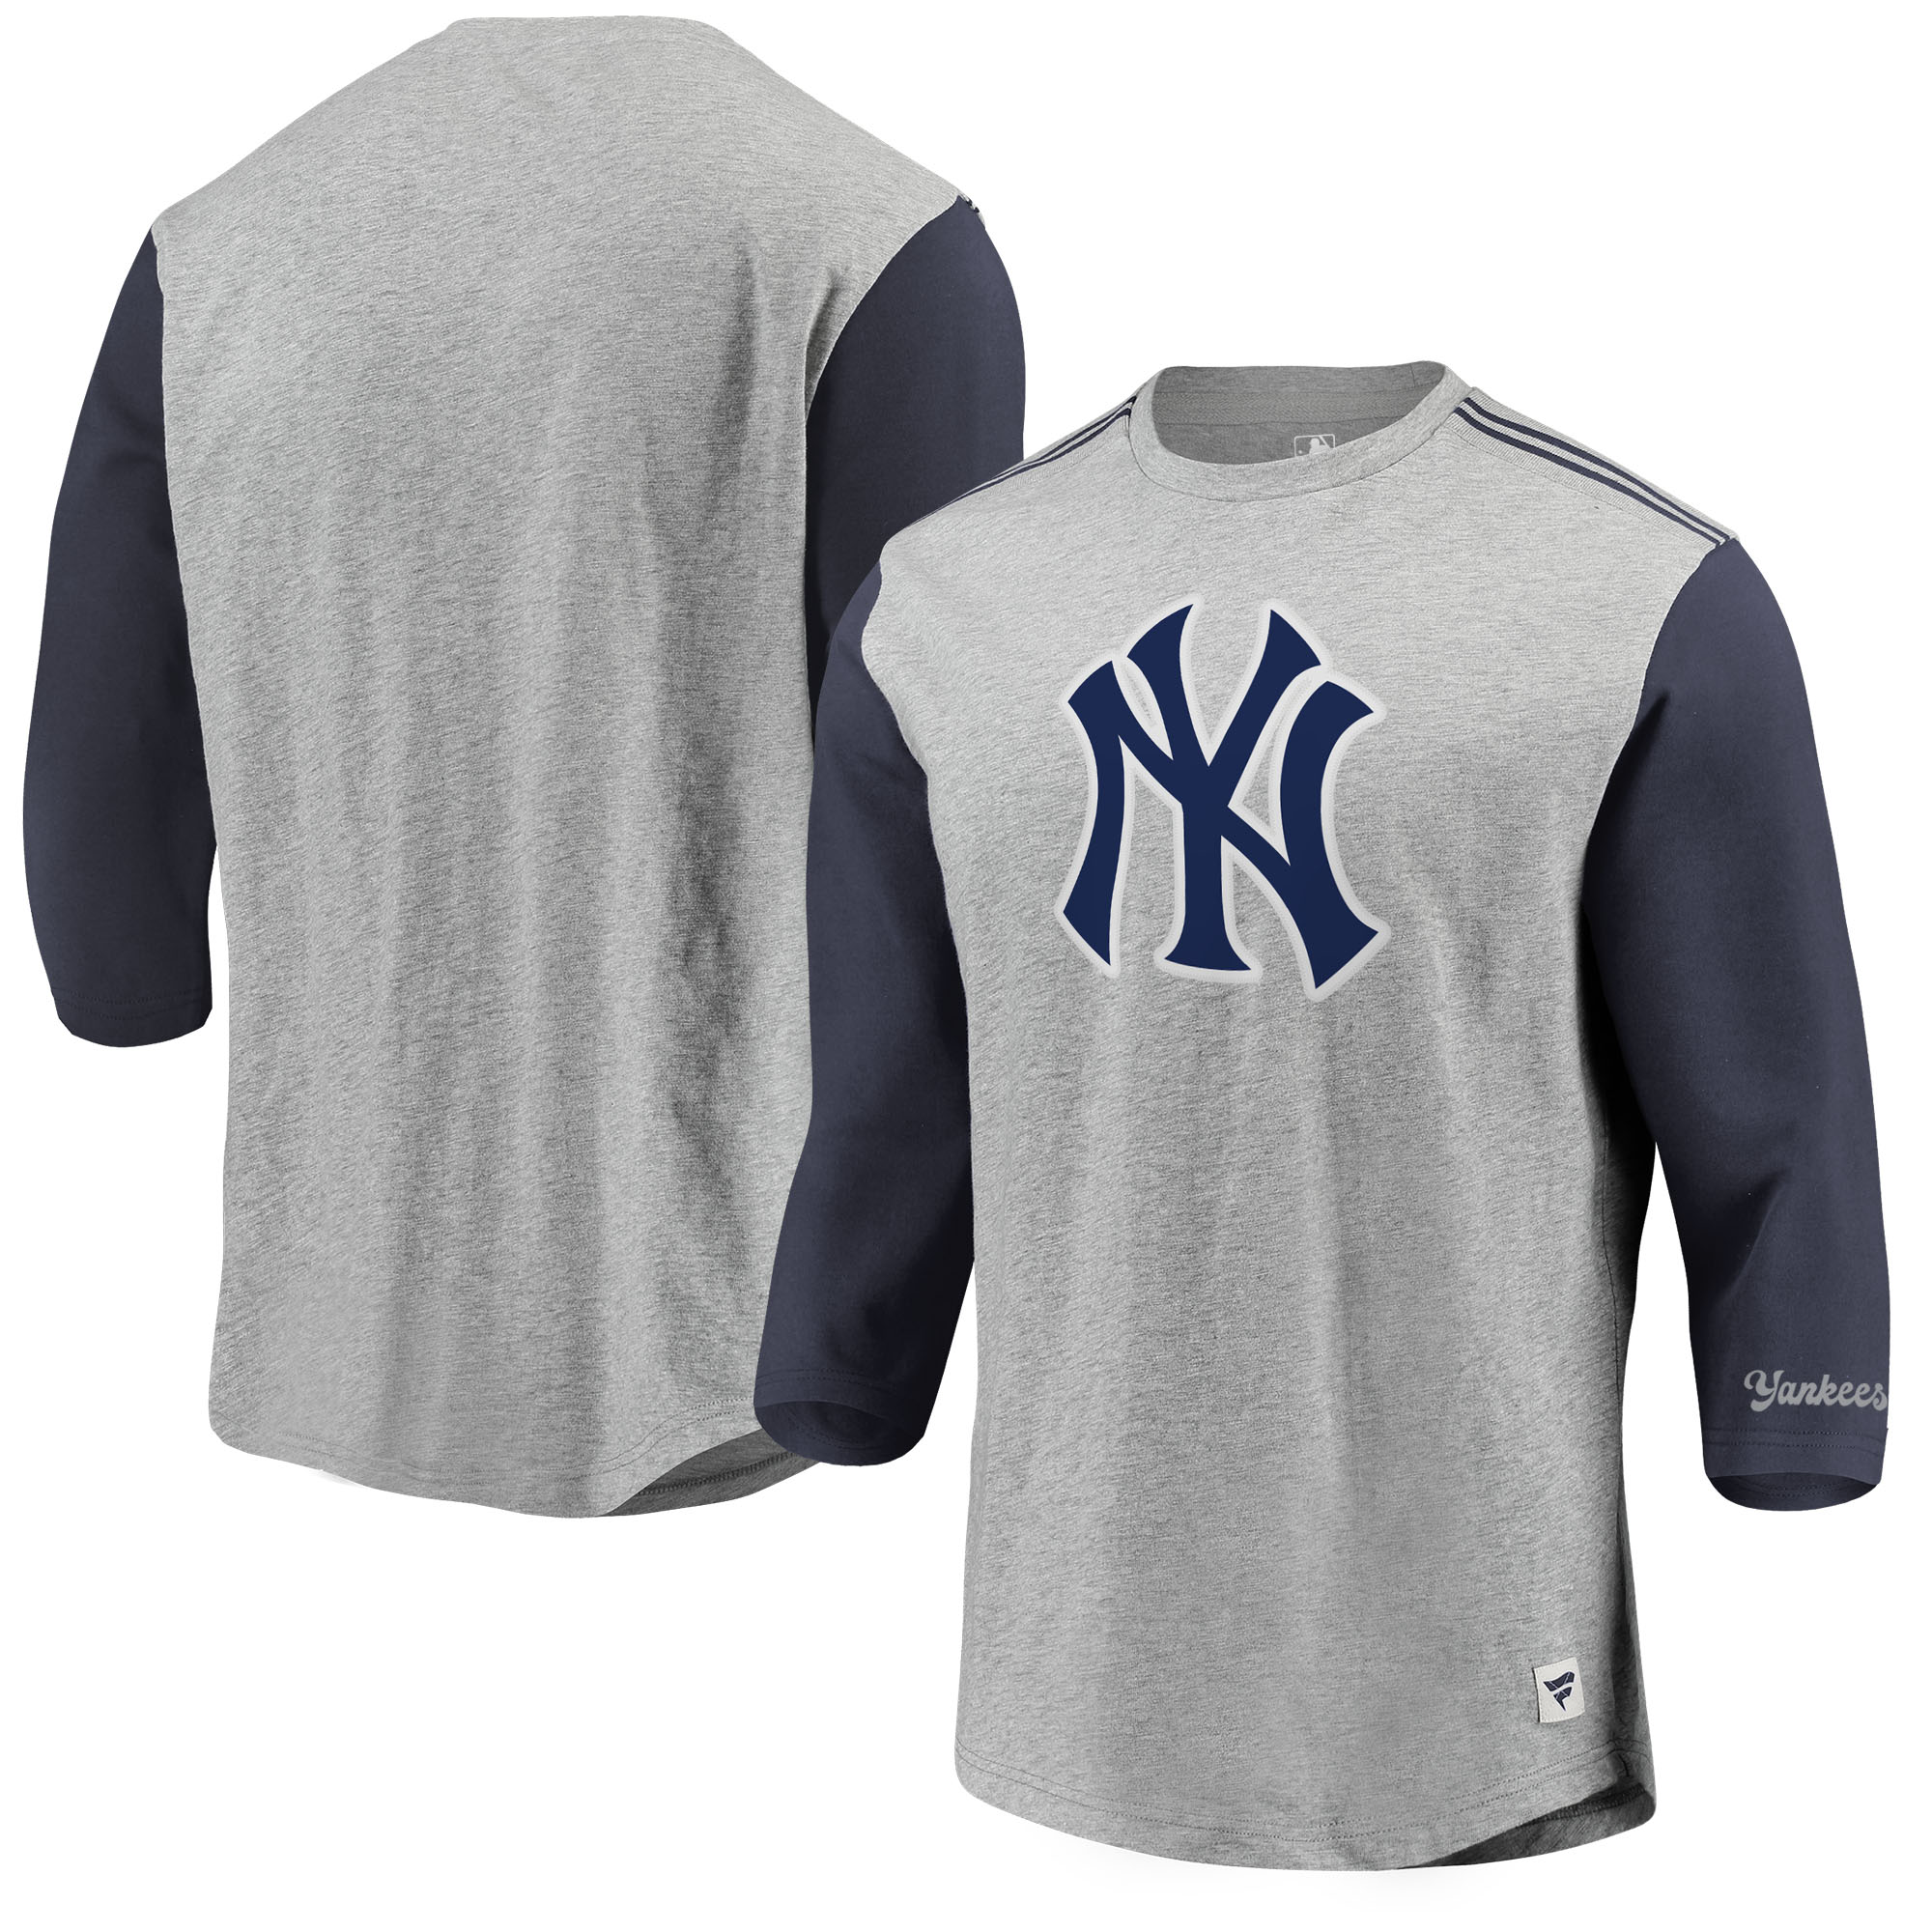 New York Yankees Fanatics Branded MLB Heritage Crew Neck 3/4-Sleeve T-Shirt - Heathered Gray/Navy